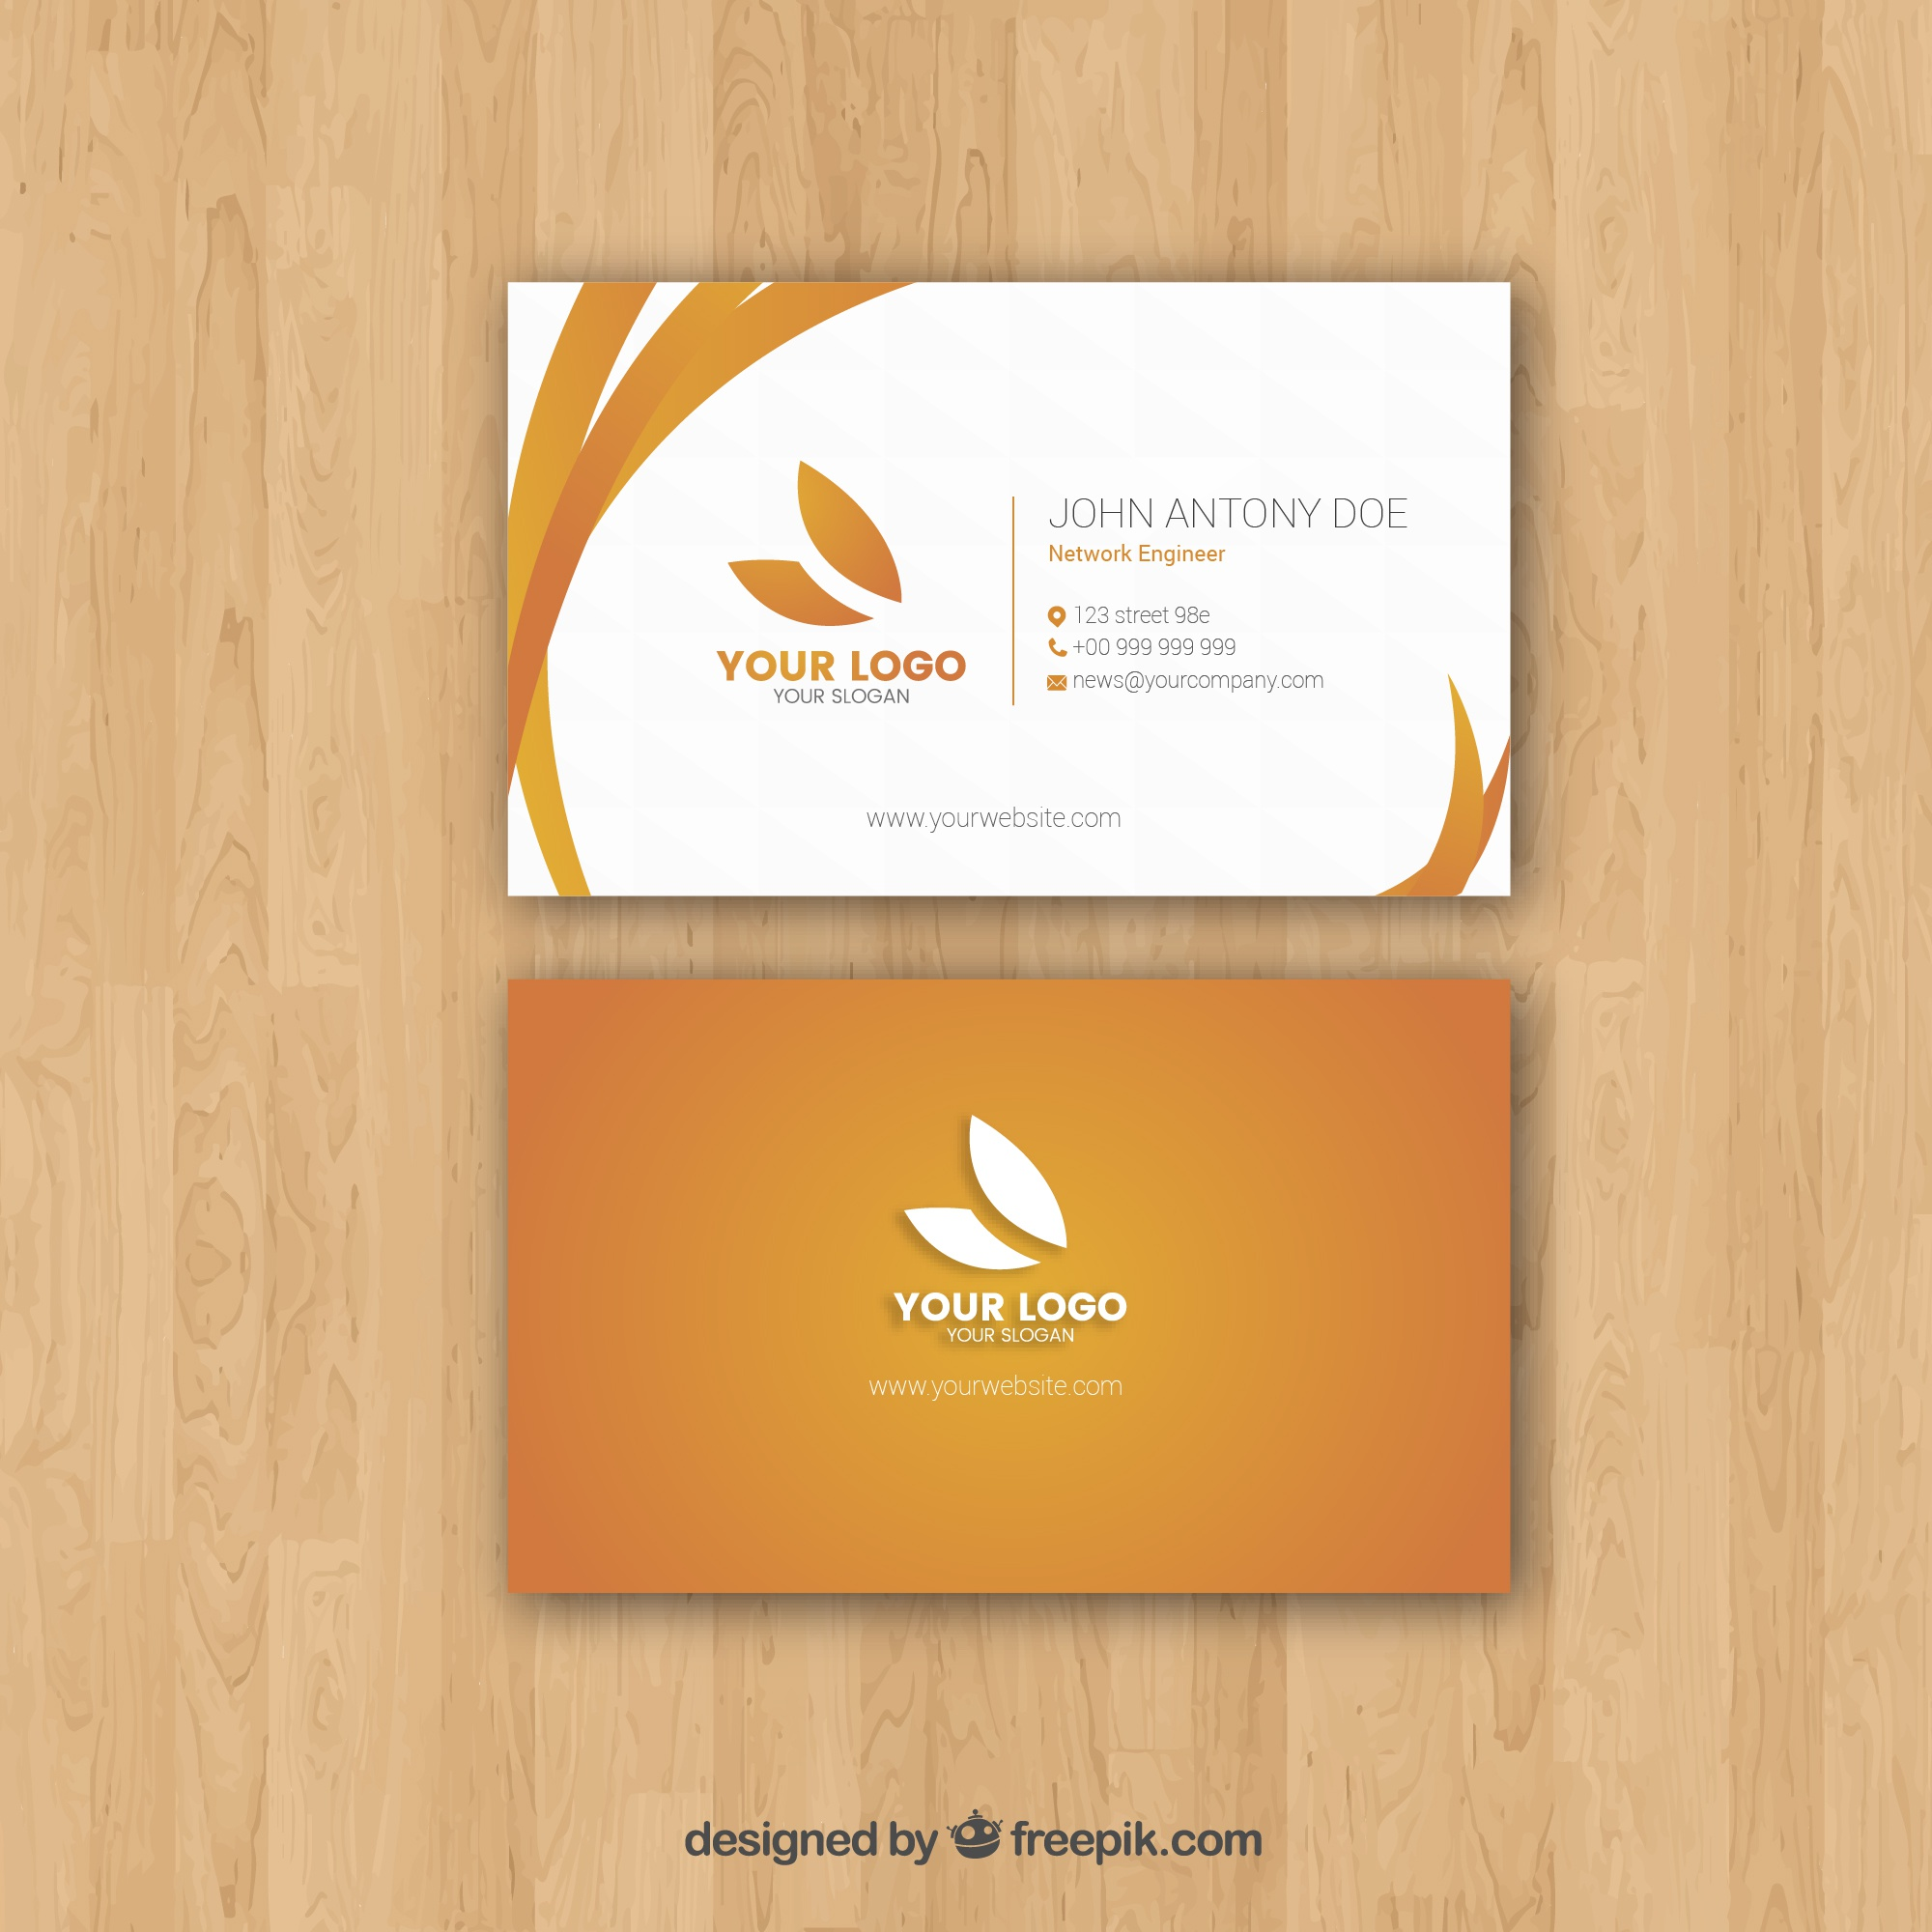 Flat business card with elegant style